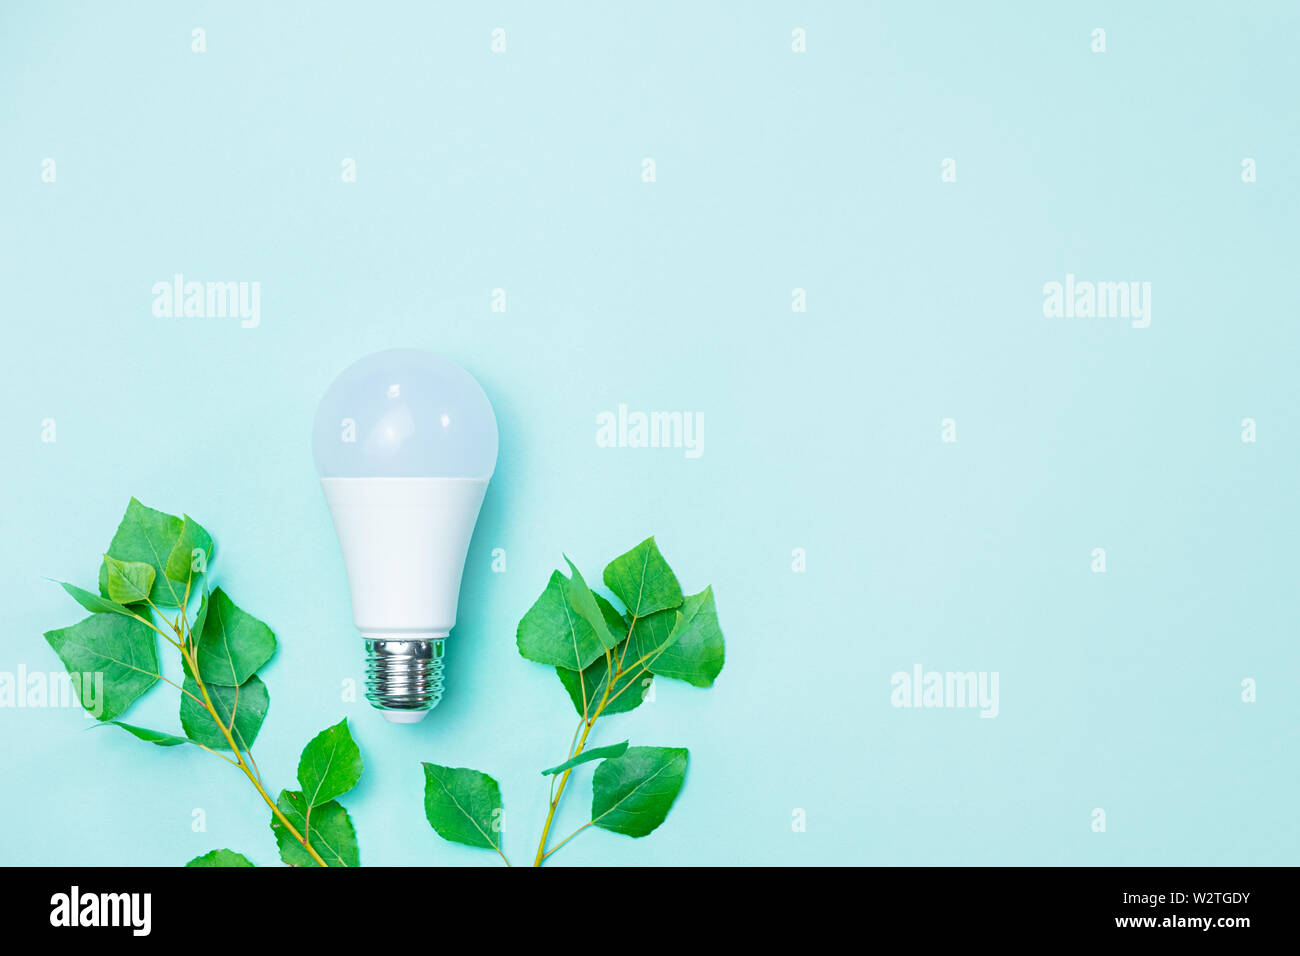 Energy efficience, ecological technologies, green electricity concept. Led lightbulb and  brances with green leaves symbolize environmental awareness - Stock Image